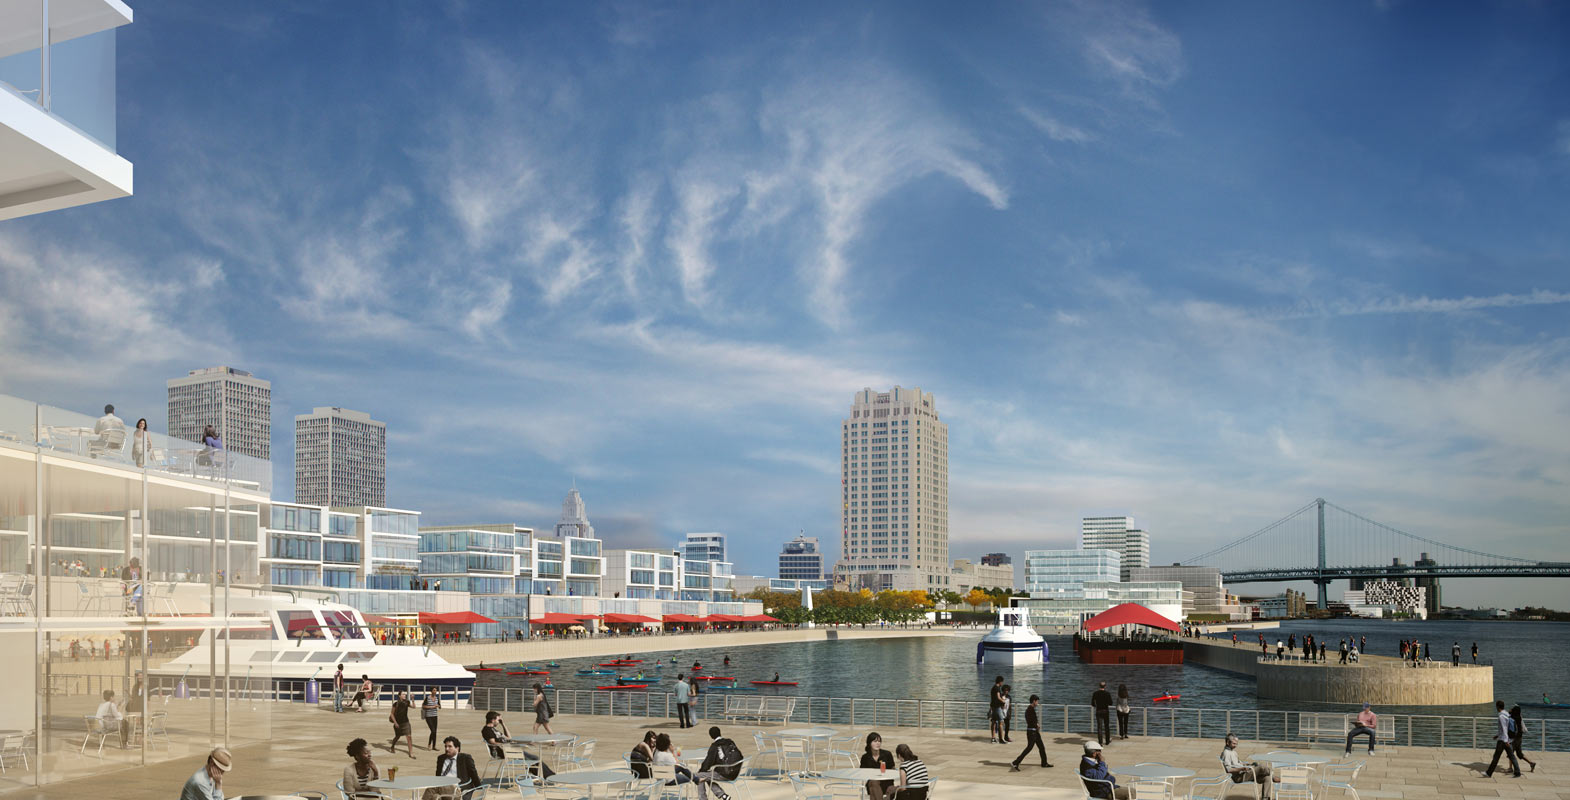 <p>At the Penn's Landing basin, mid-rise residential development is proposed, with waterfront restaurants and retail on the bottom two floors, and floating restaurants attached to the quay.</p>